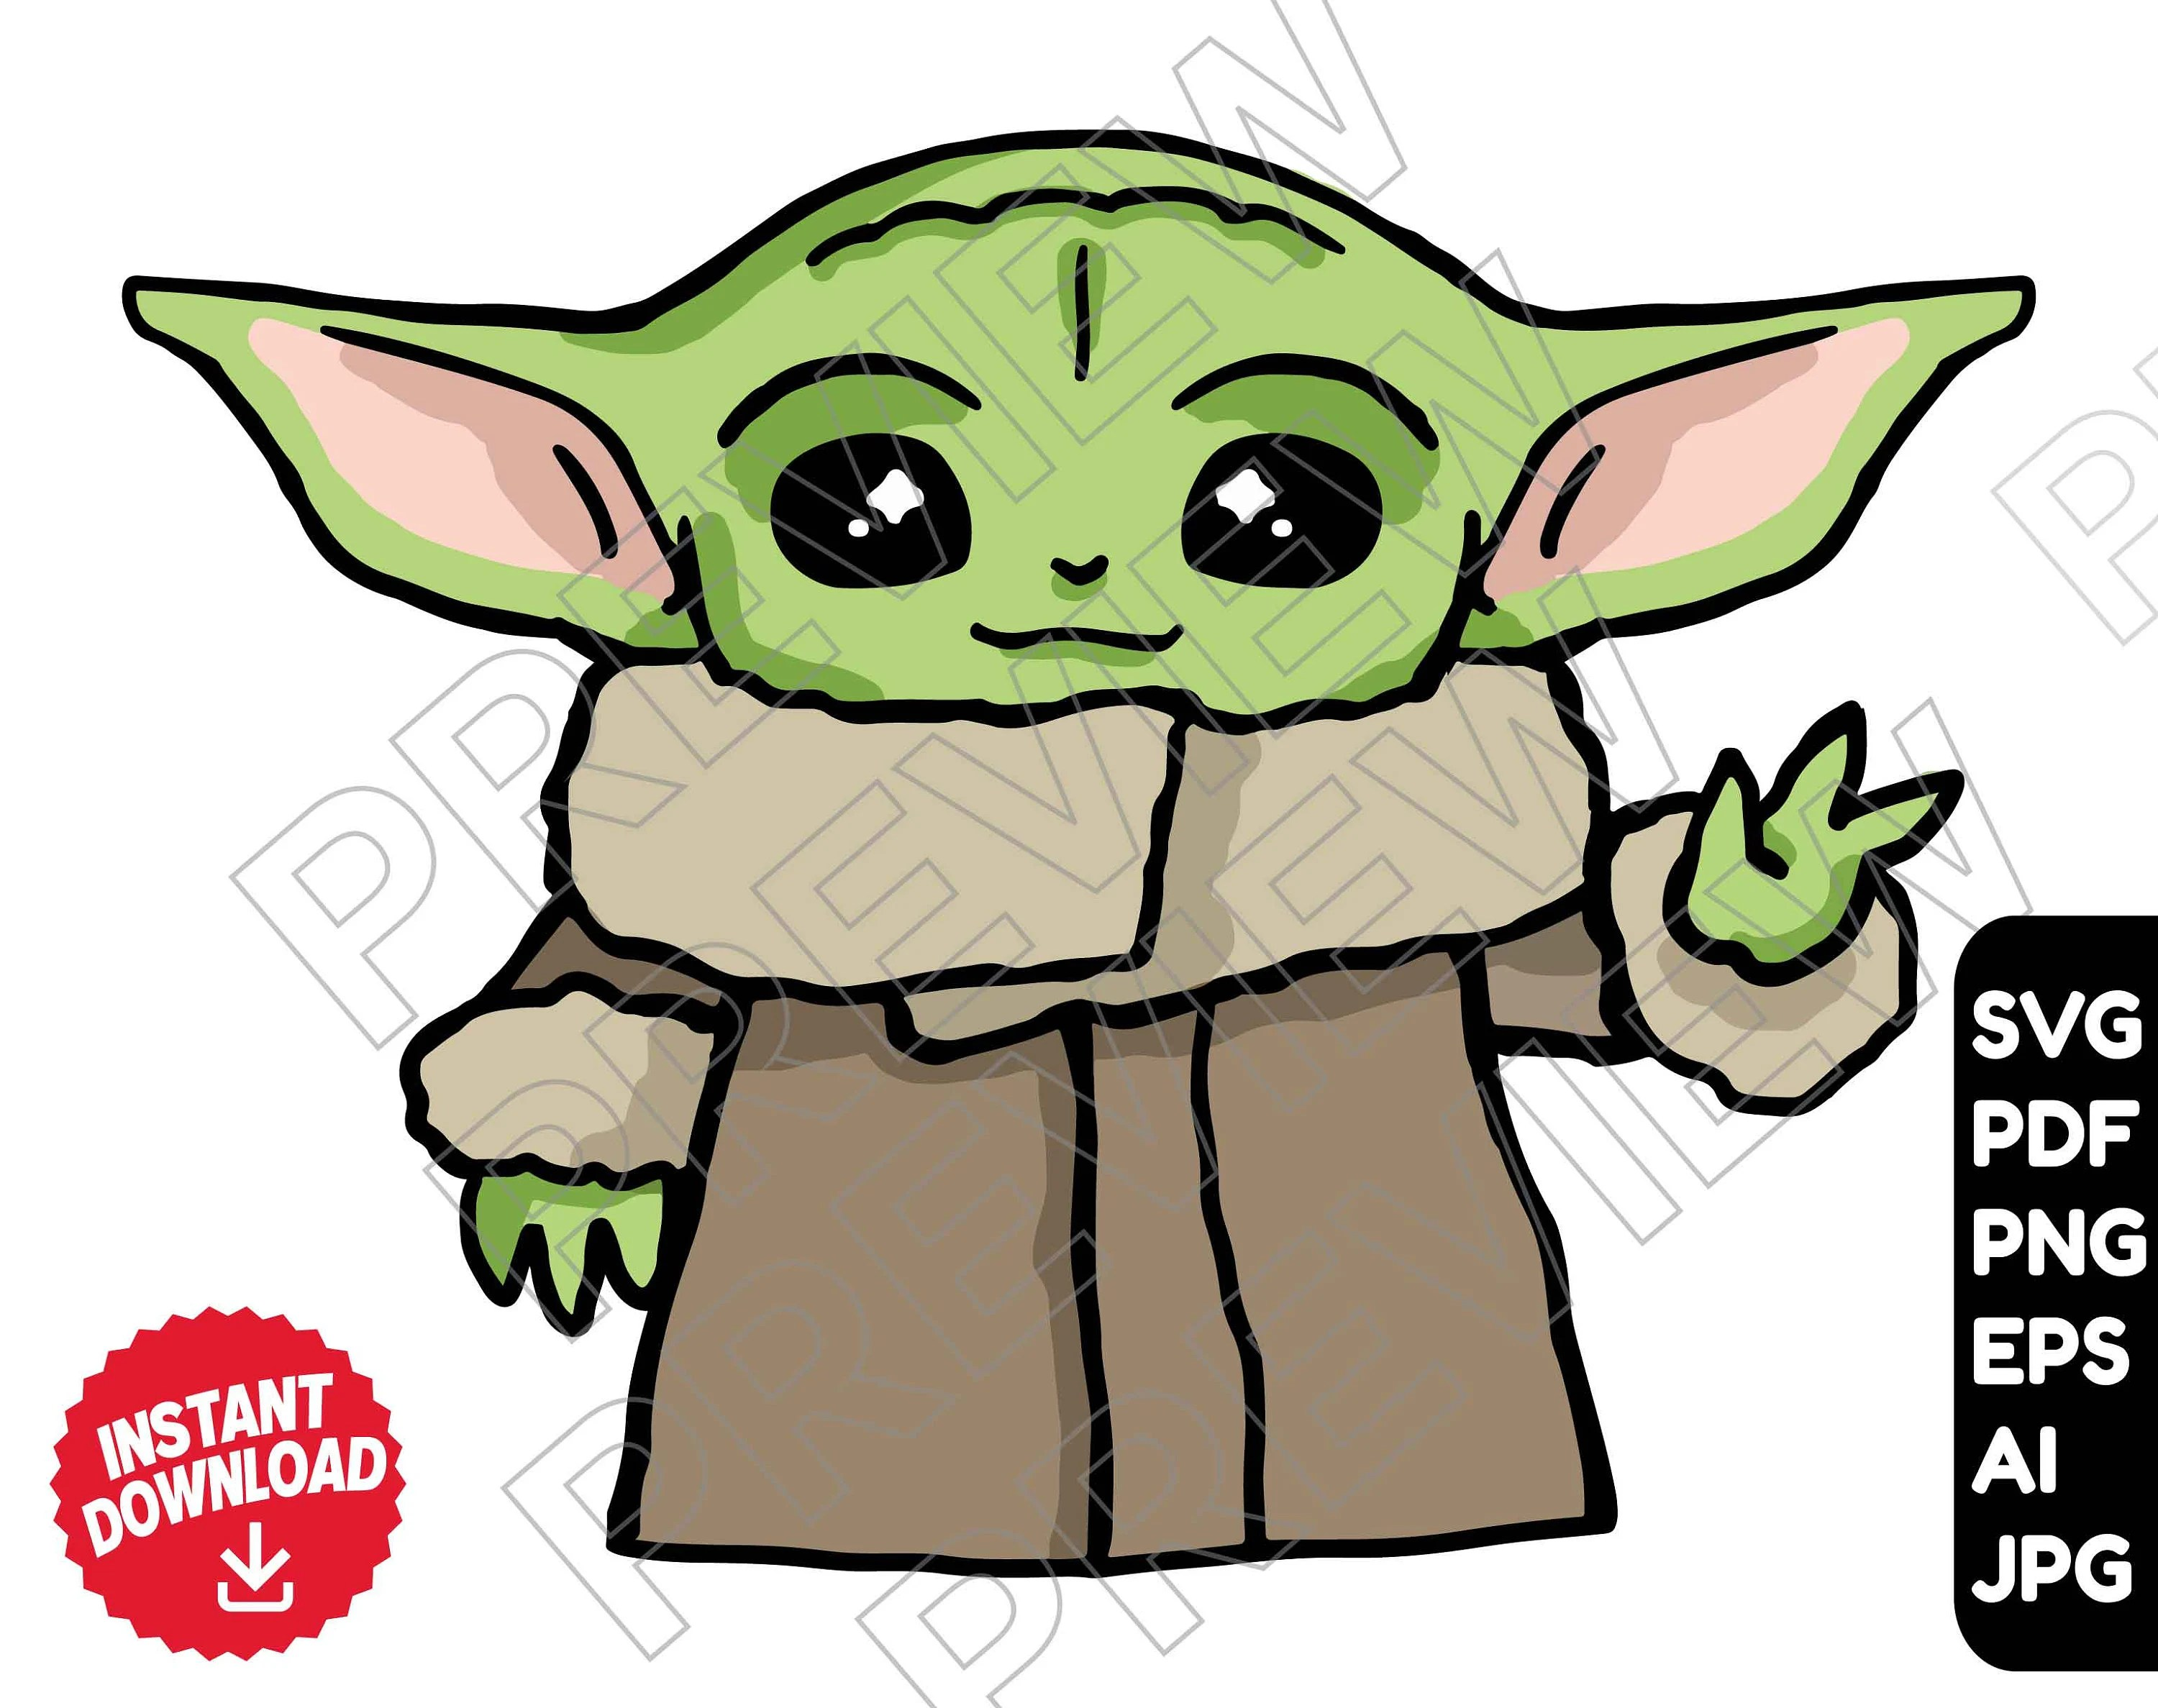 Baby Yoda Svg Grogu Clipart Novocom Top He is a toddler member of the same unnamed alien species as the star wars characters yoda and yaddle. baby yoda svg grogu clipart novocom top